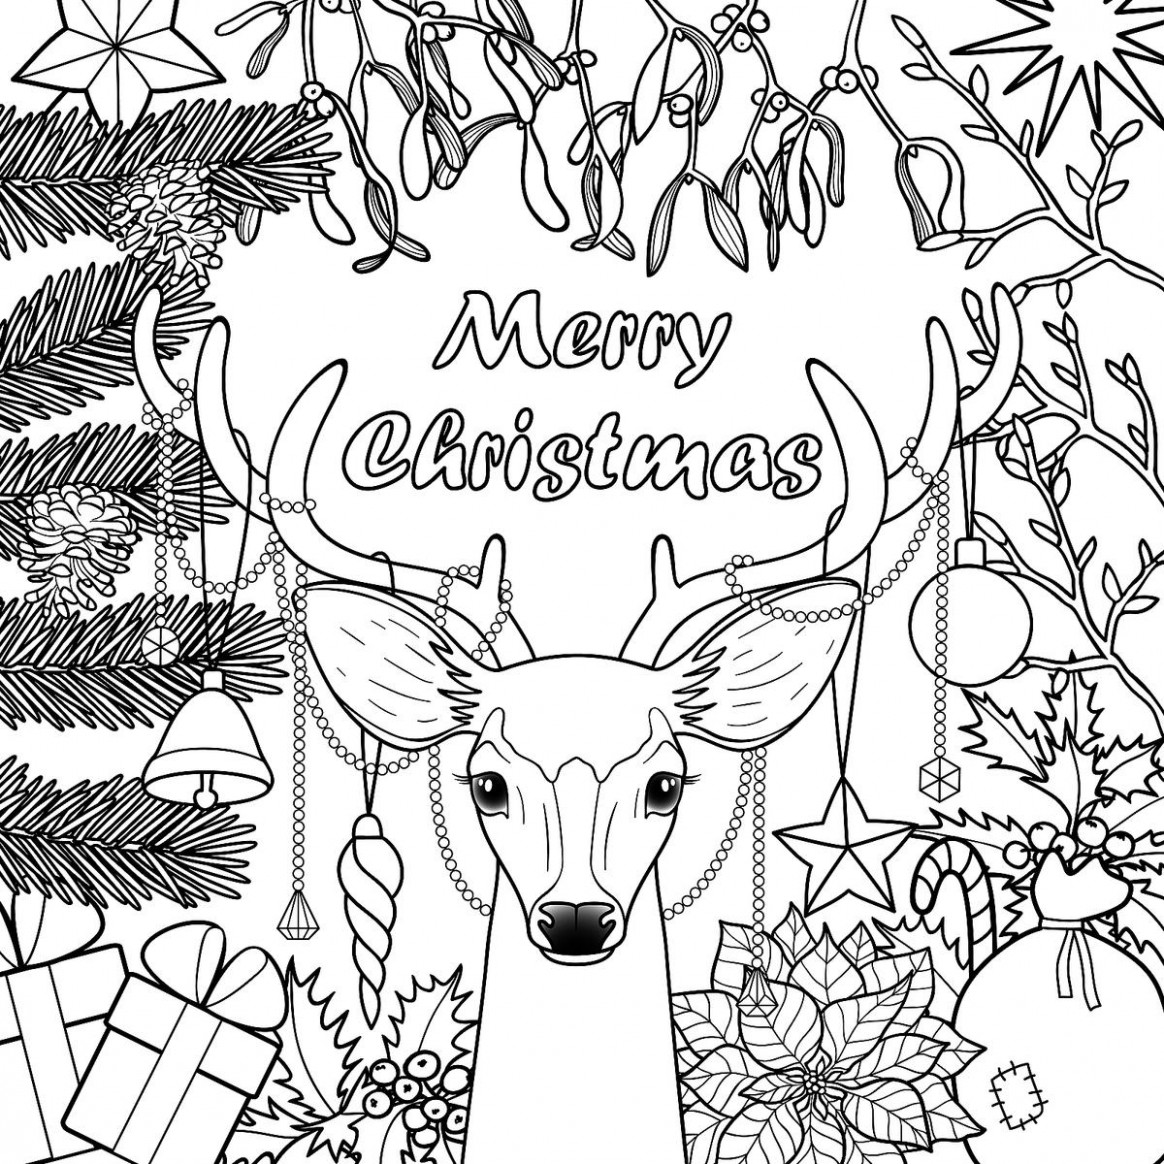 Christmas Coloring Pages: 14 Printable Coloring Pages for the ..